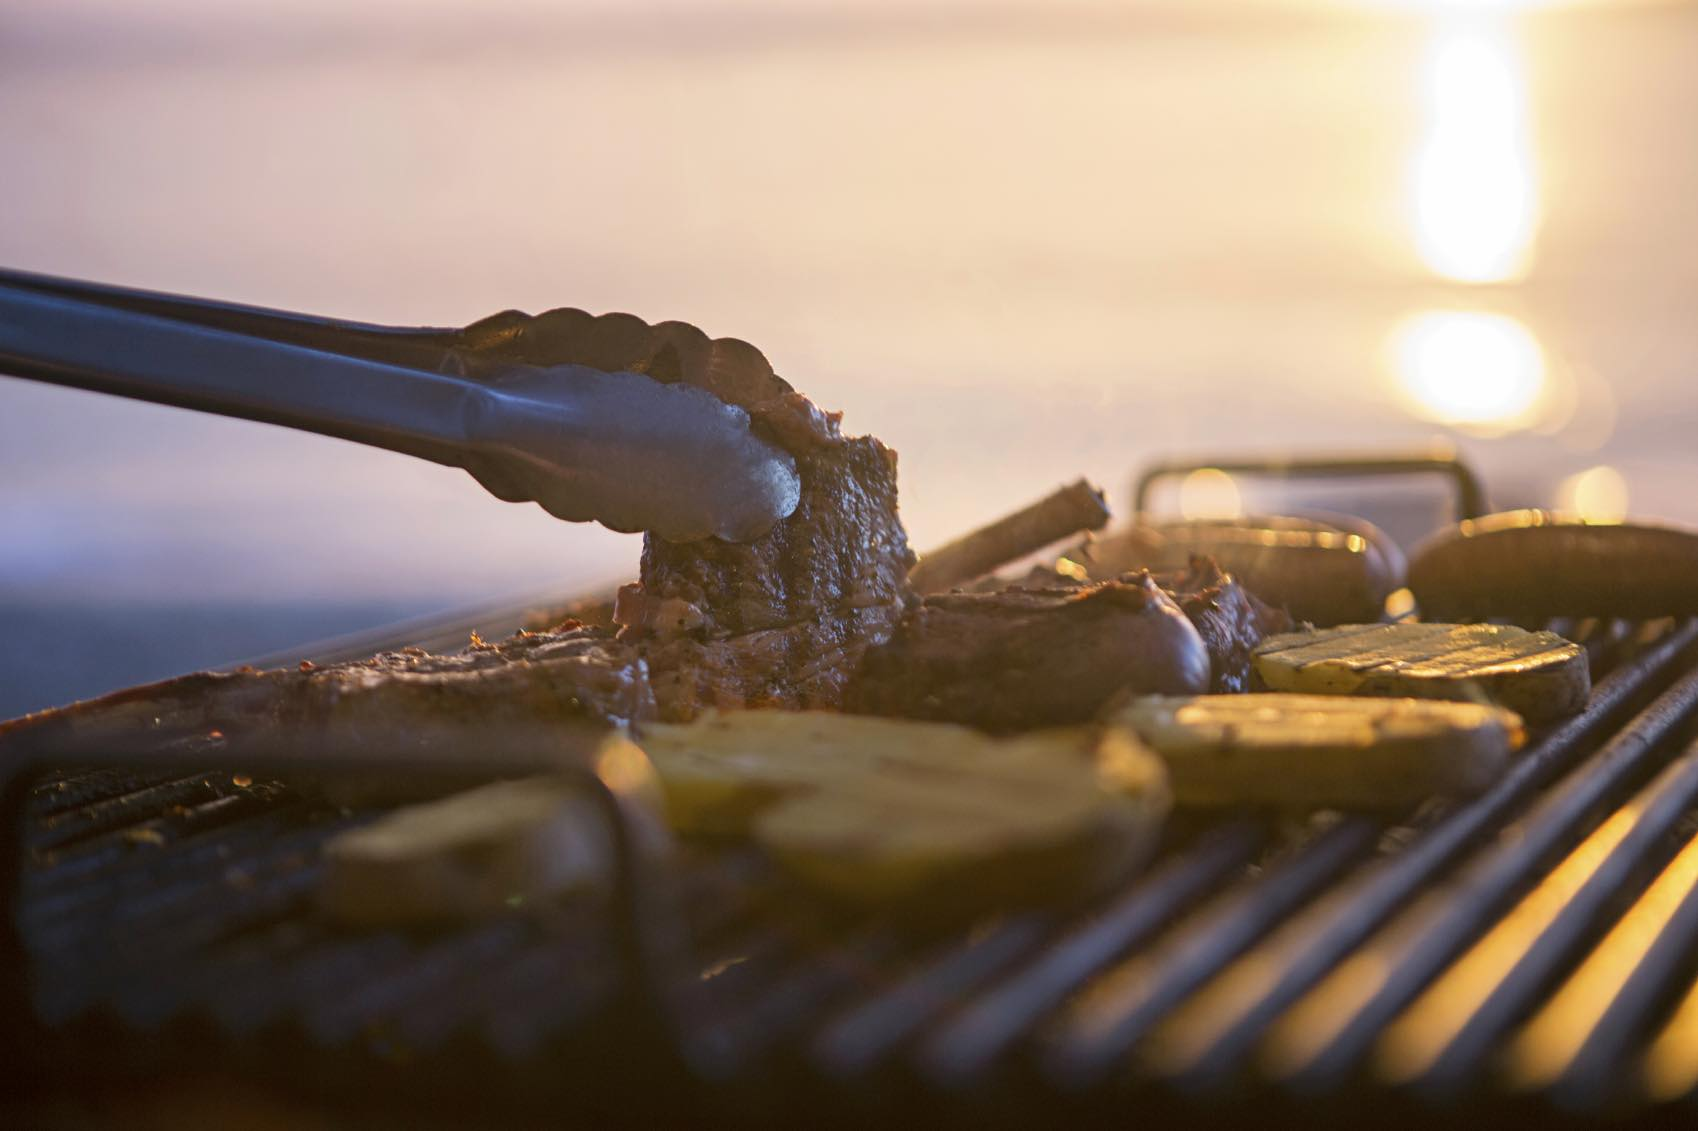 Skip the grill tools this Father's Day. image: shotshare